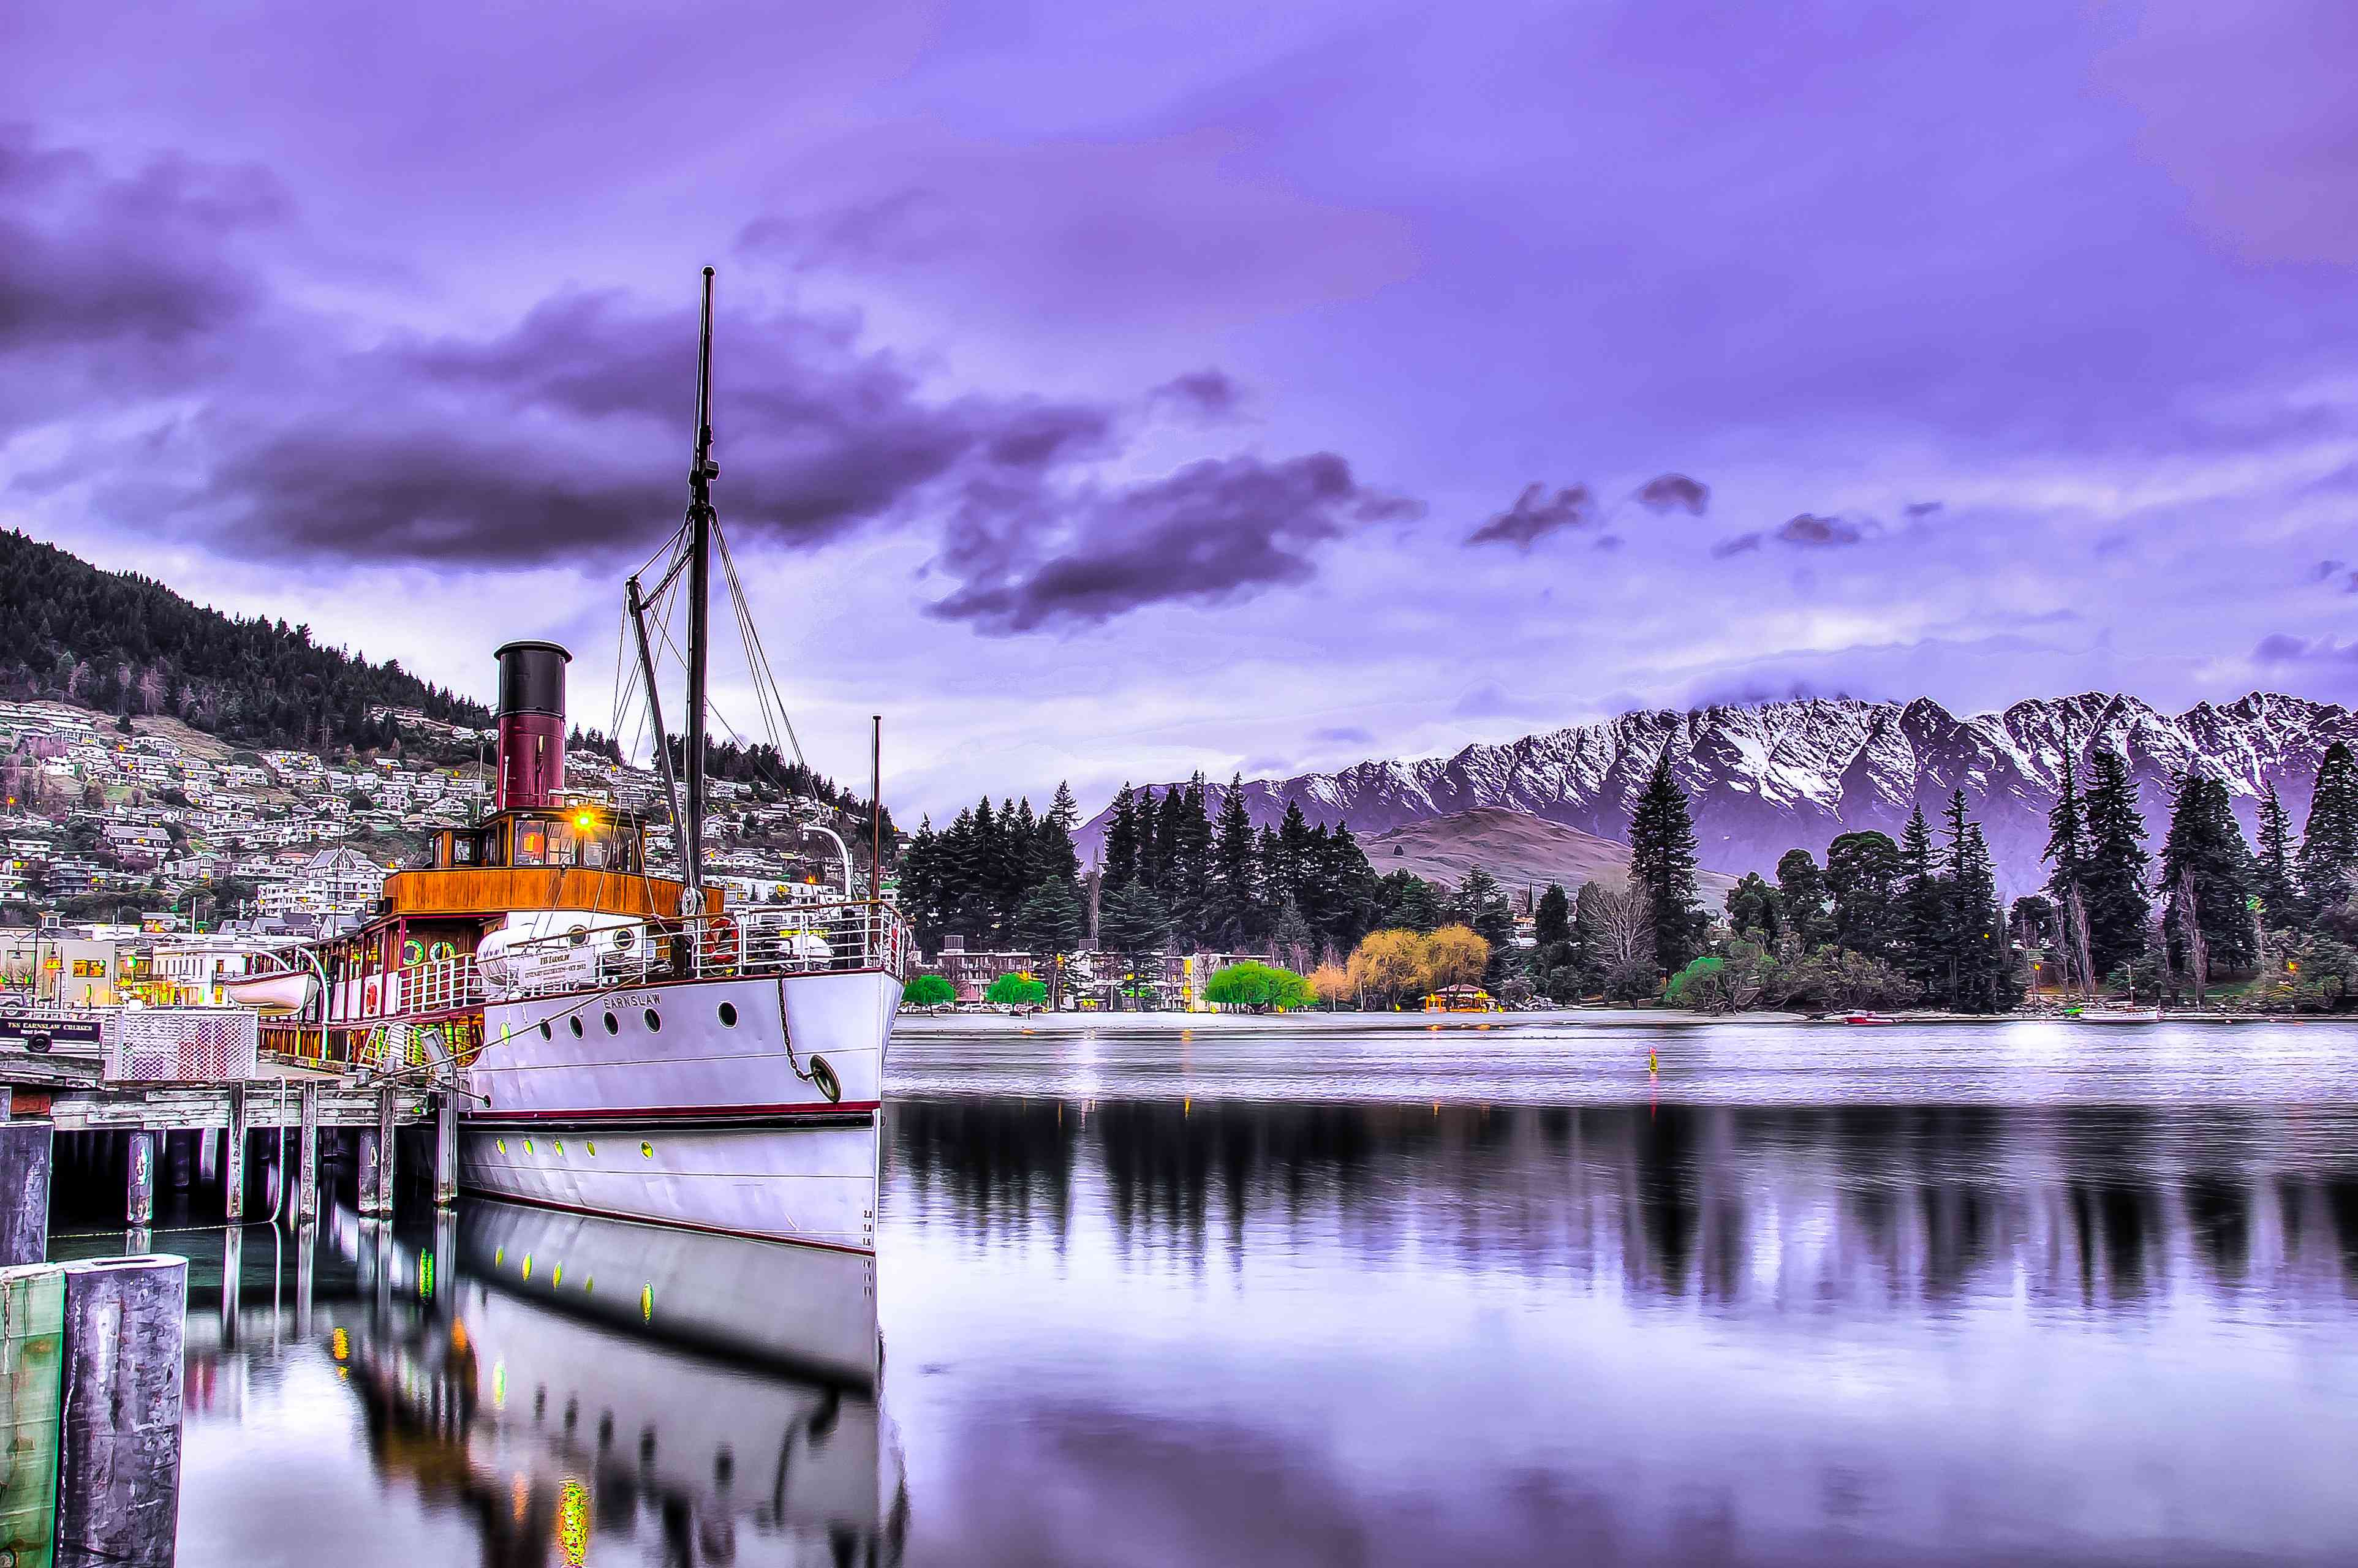 purple sunset sky with steamship on a lake in front of a town and snow-capped mountains